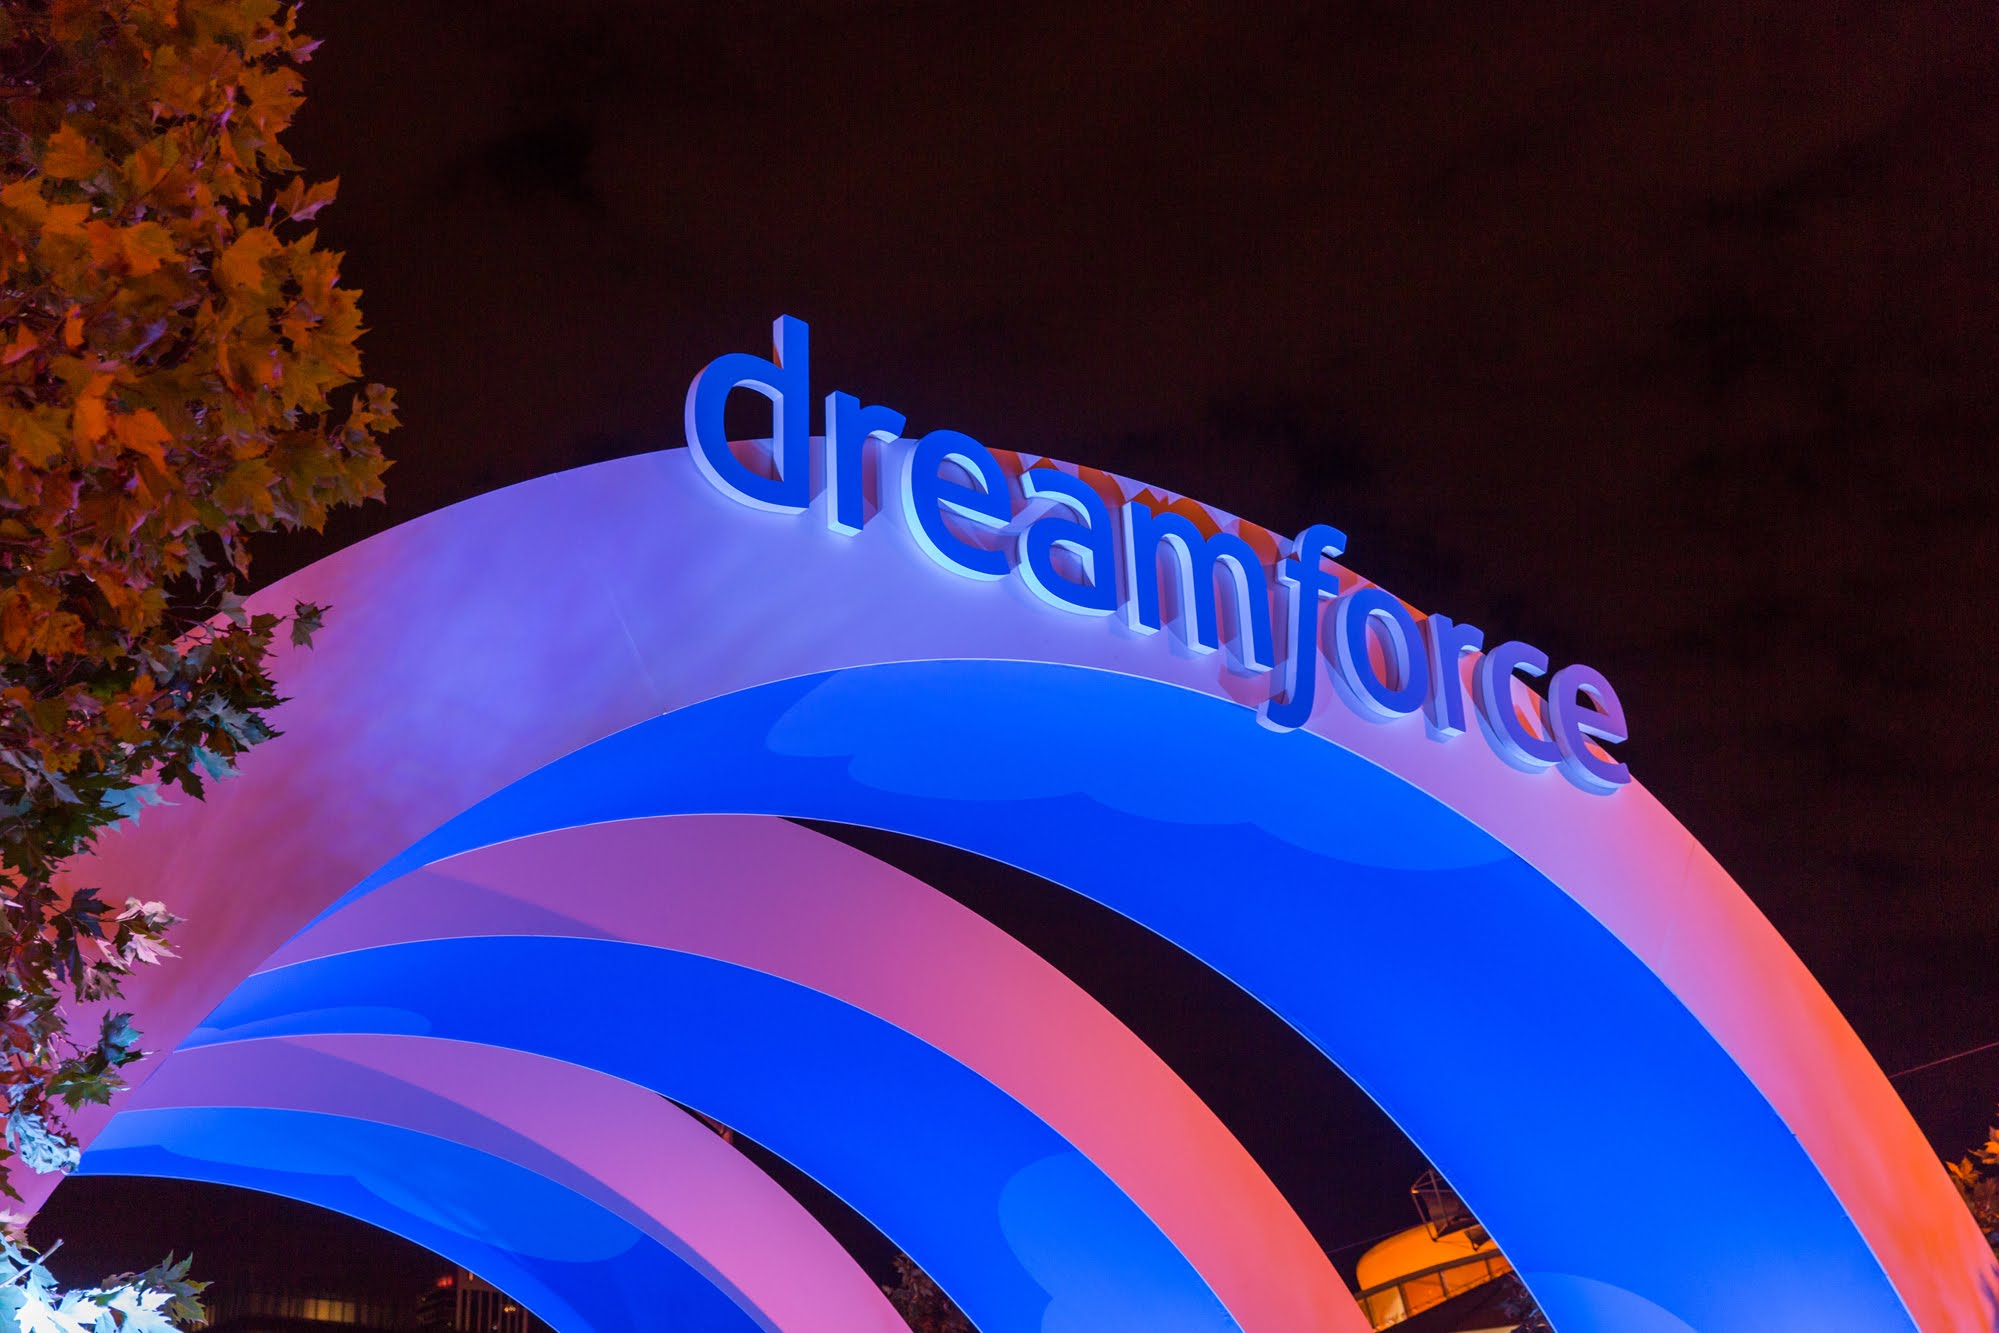 One more day to Dreamforce 2016 - The Last Minute Look